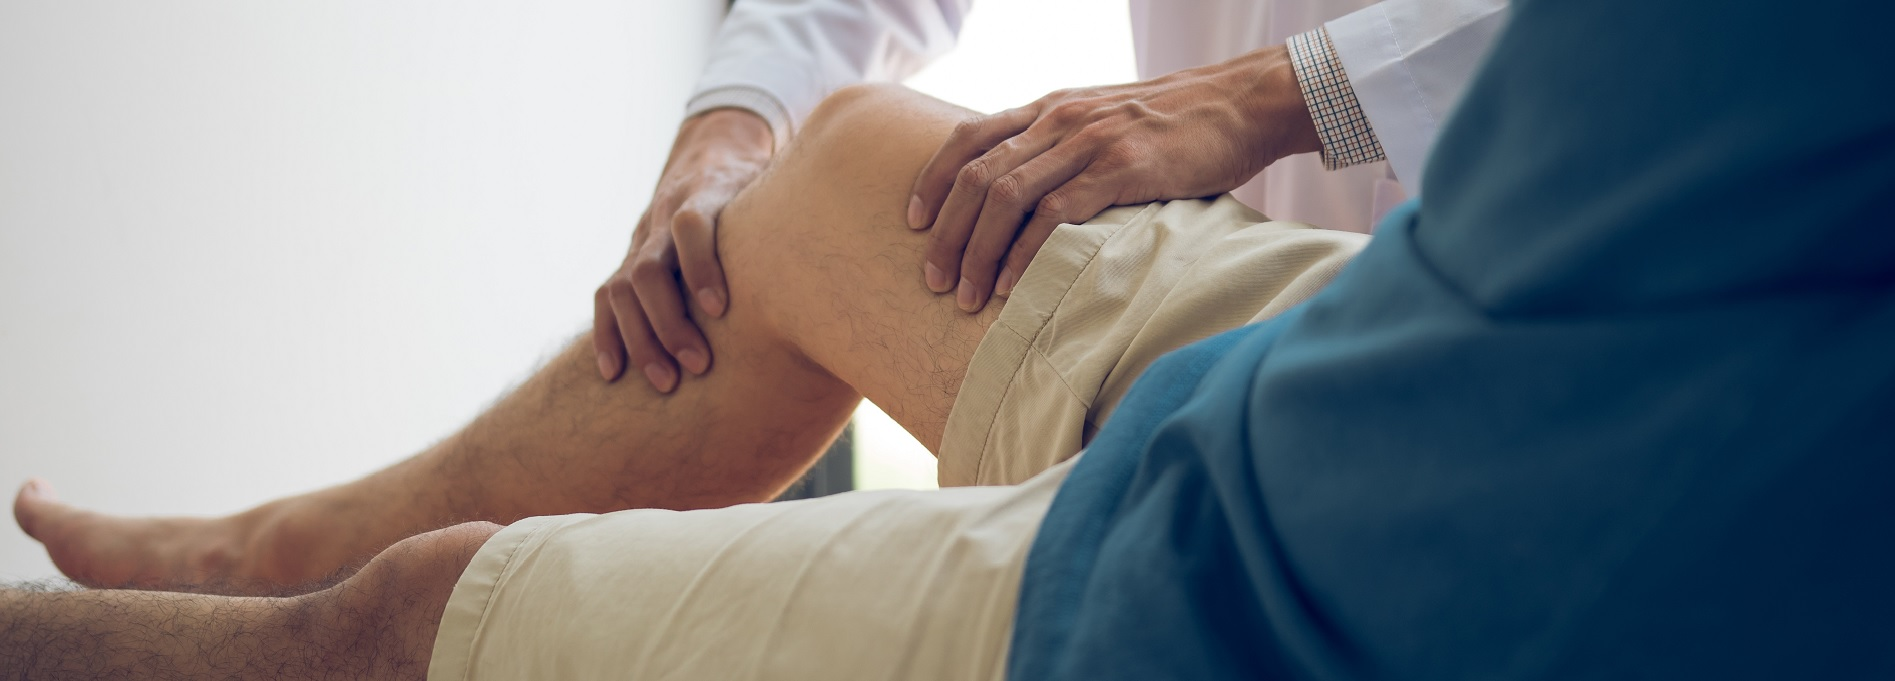 Orthopedic provider examining patient's knee